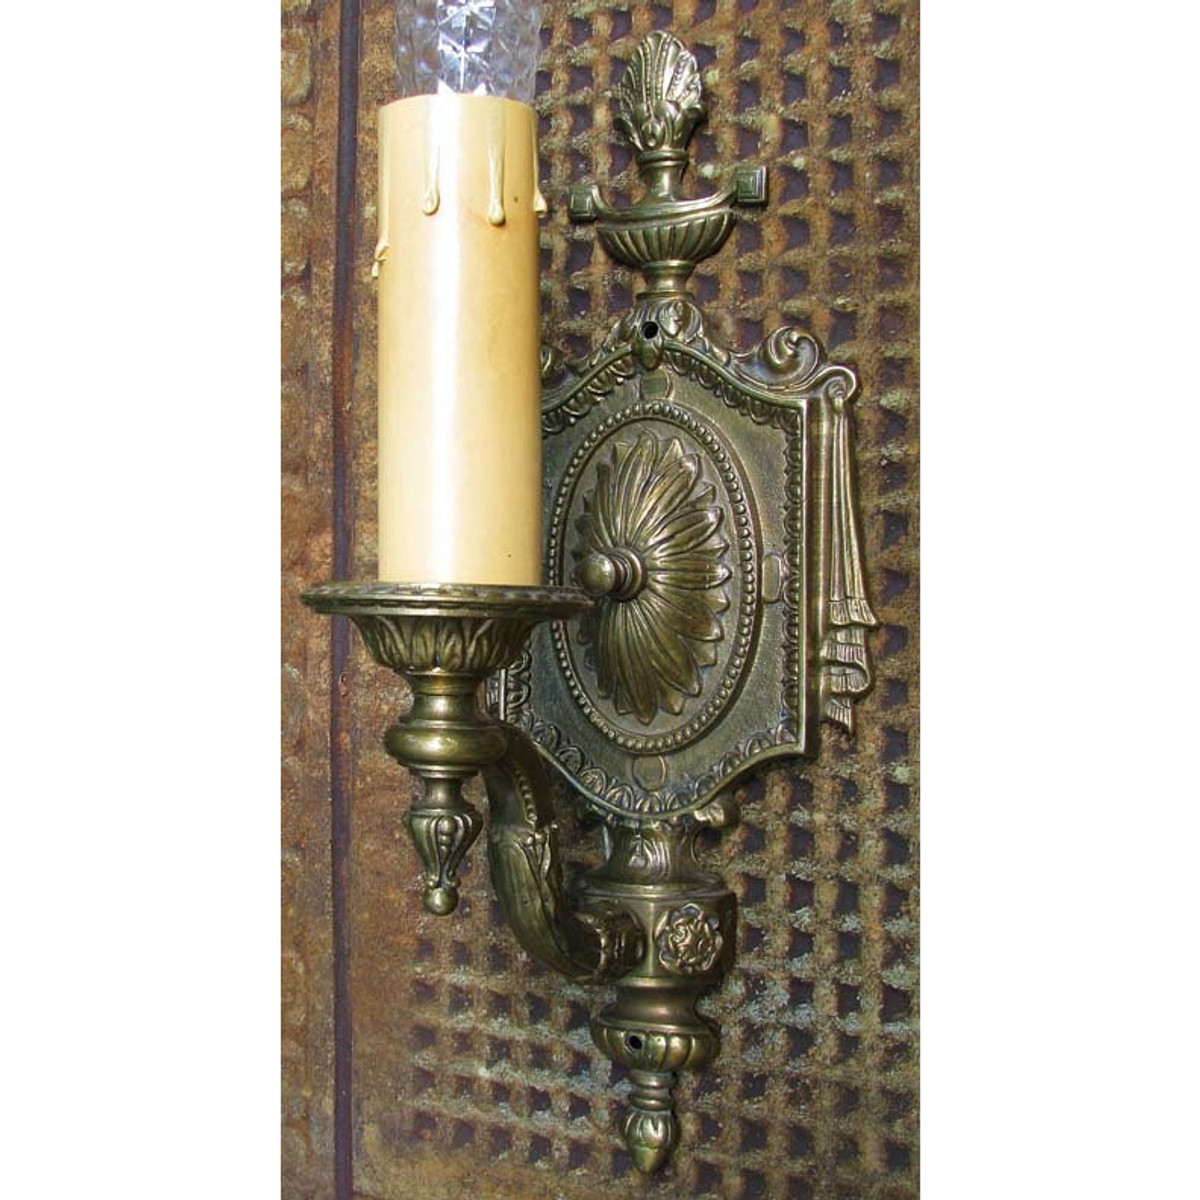 609411 - Antique Neoclassical Candle Arm Wall Sconce